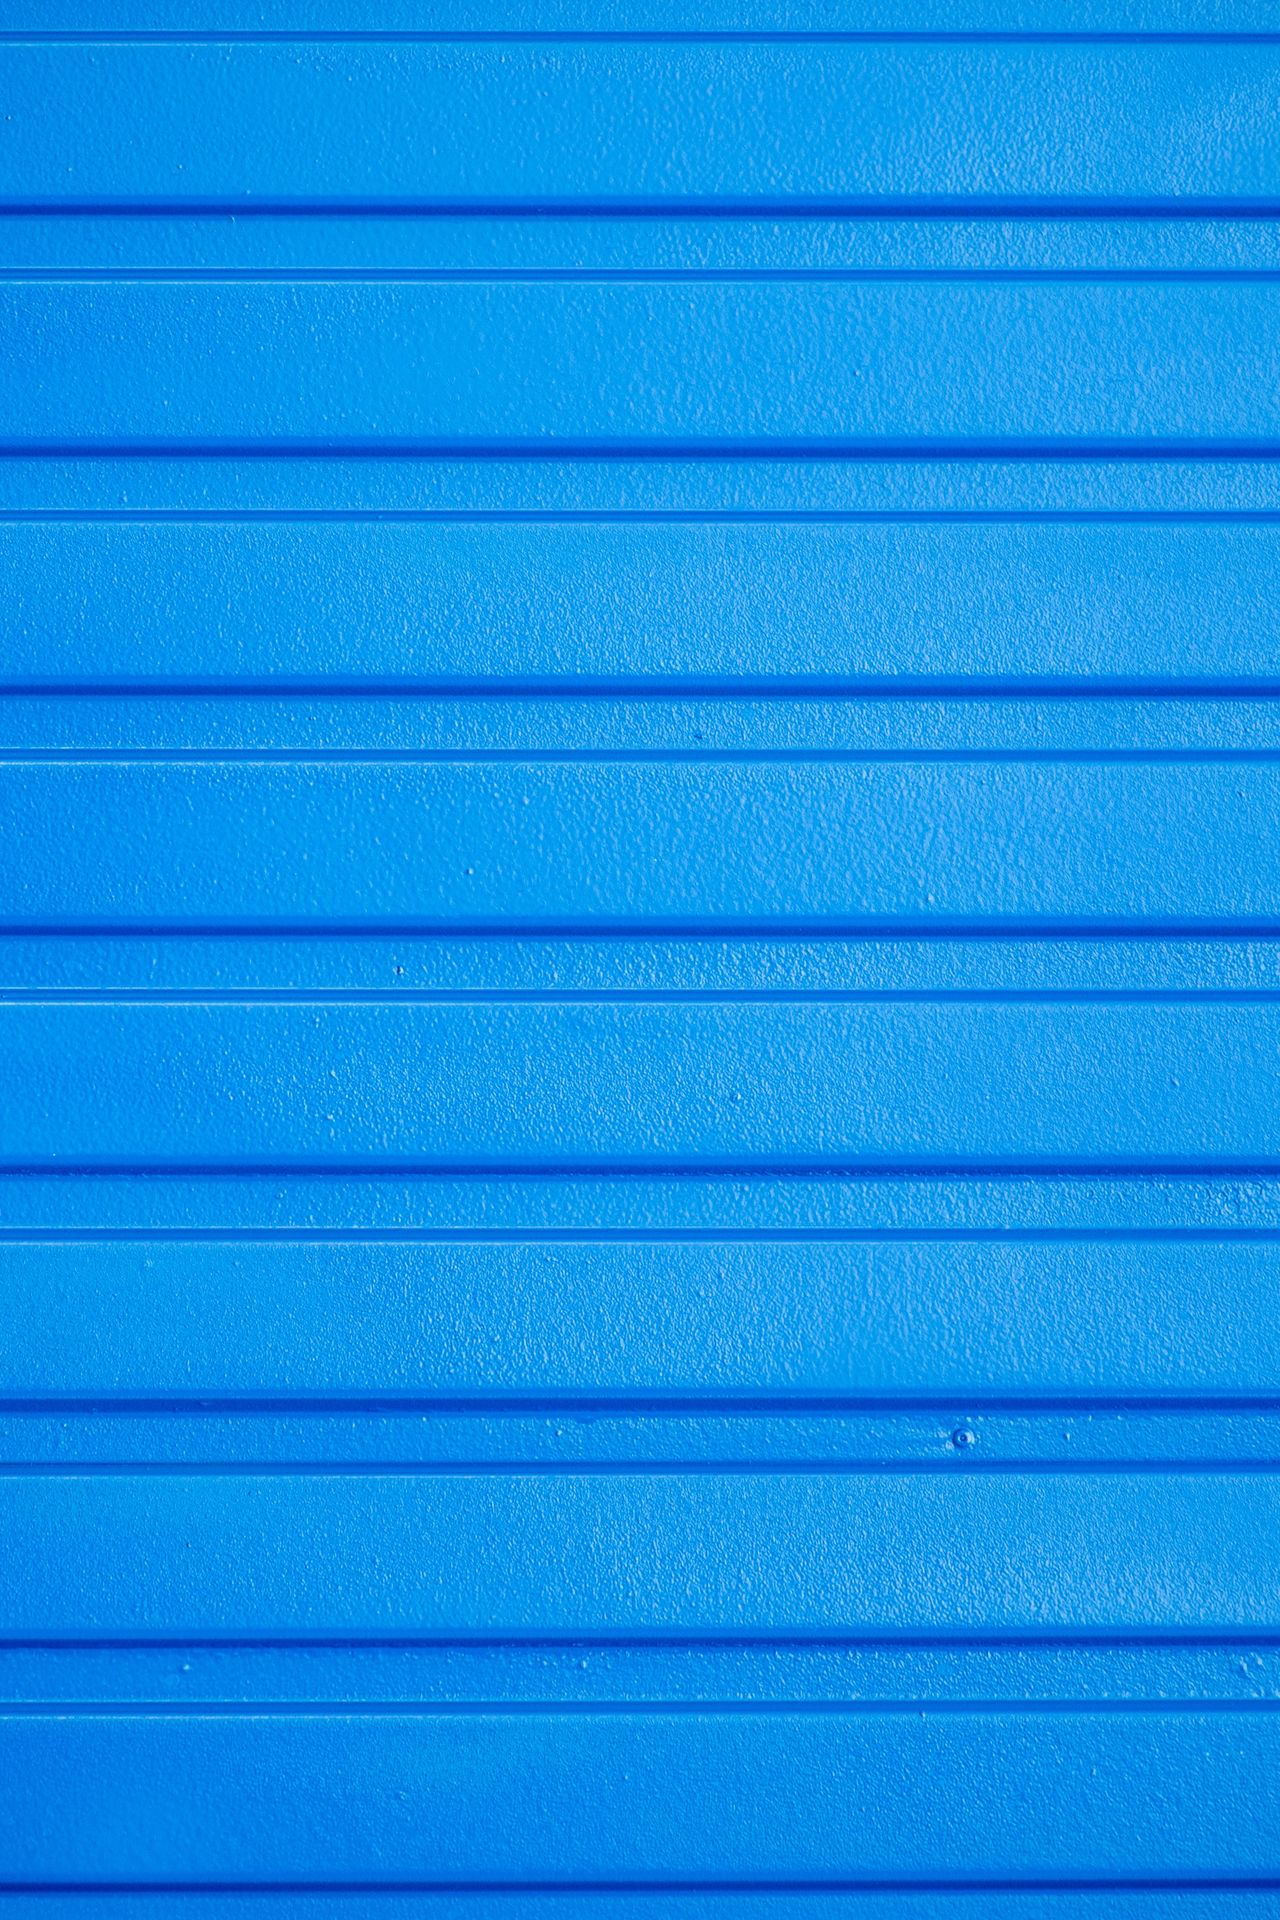 Bluemonday Abstract Architecture Backgrounds Blue Blue Monday Bluemonday Close-up Day Full Frame In A Row LINE Minimal Minimalism Minimalist Minimalistic Minimalobsession No People Pattern Simplicity Striped Surface Structure Surfaces And Textures